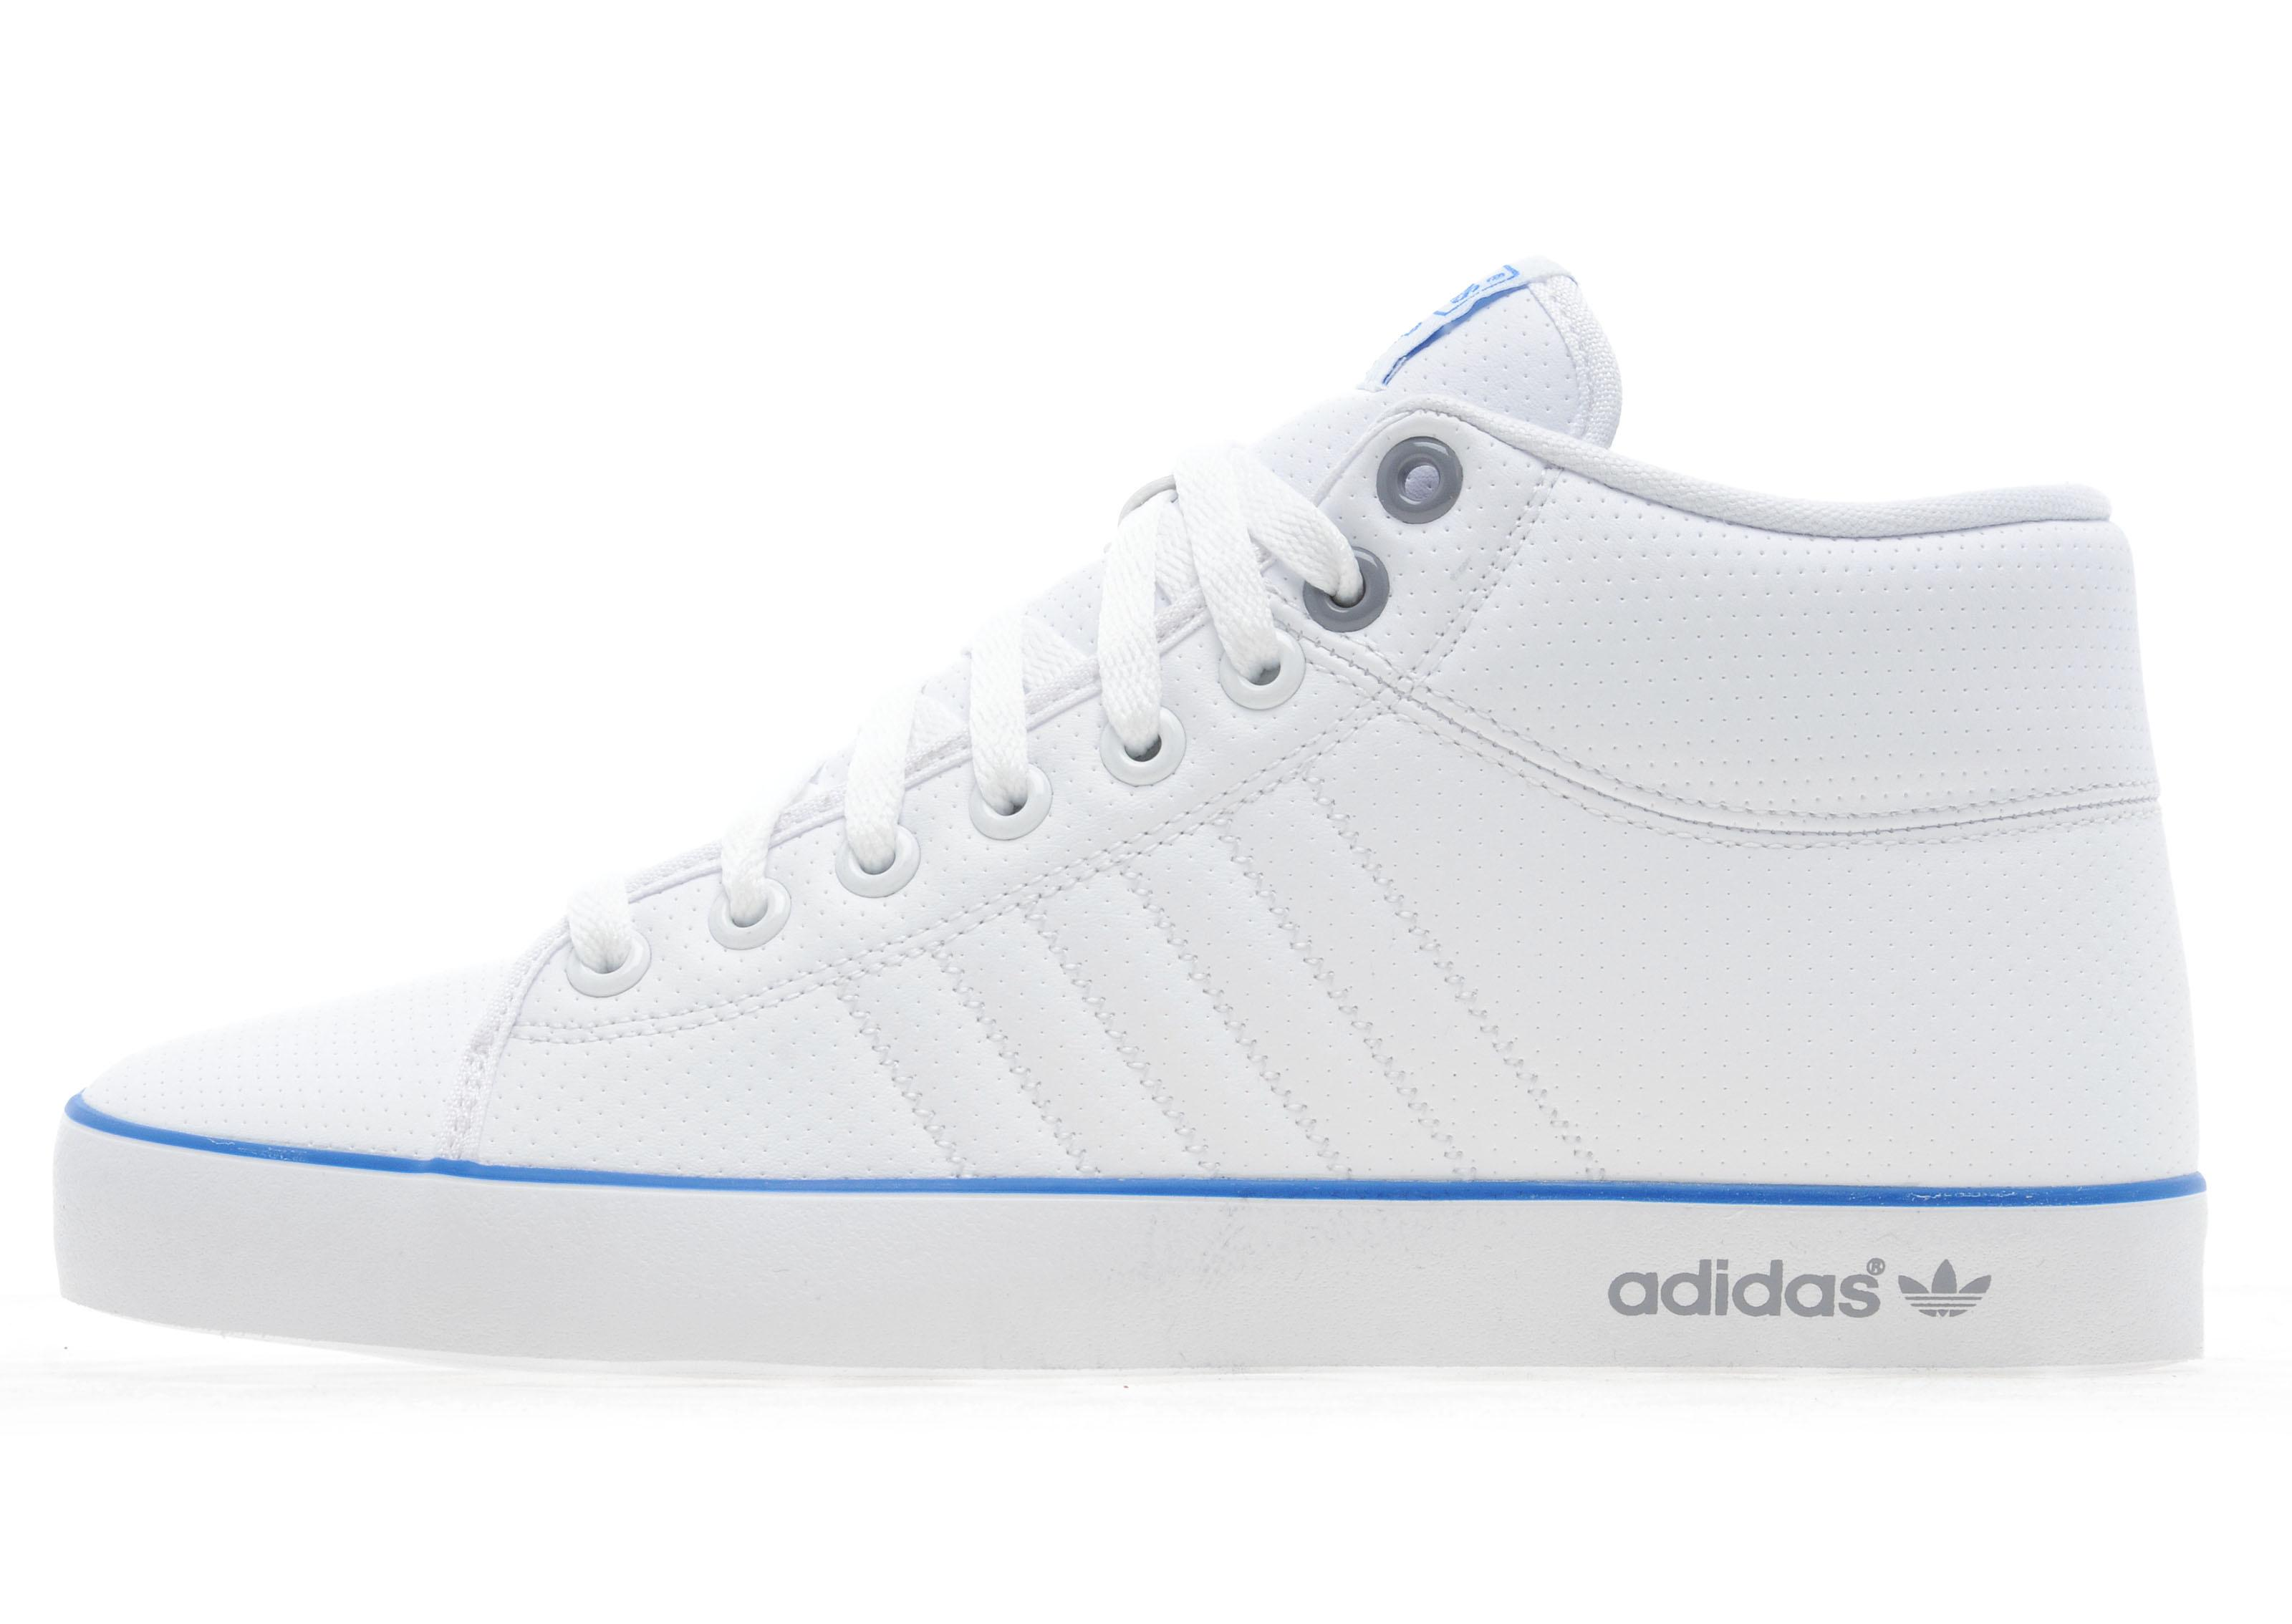 adidas originals tennis pro indoor trainer